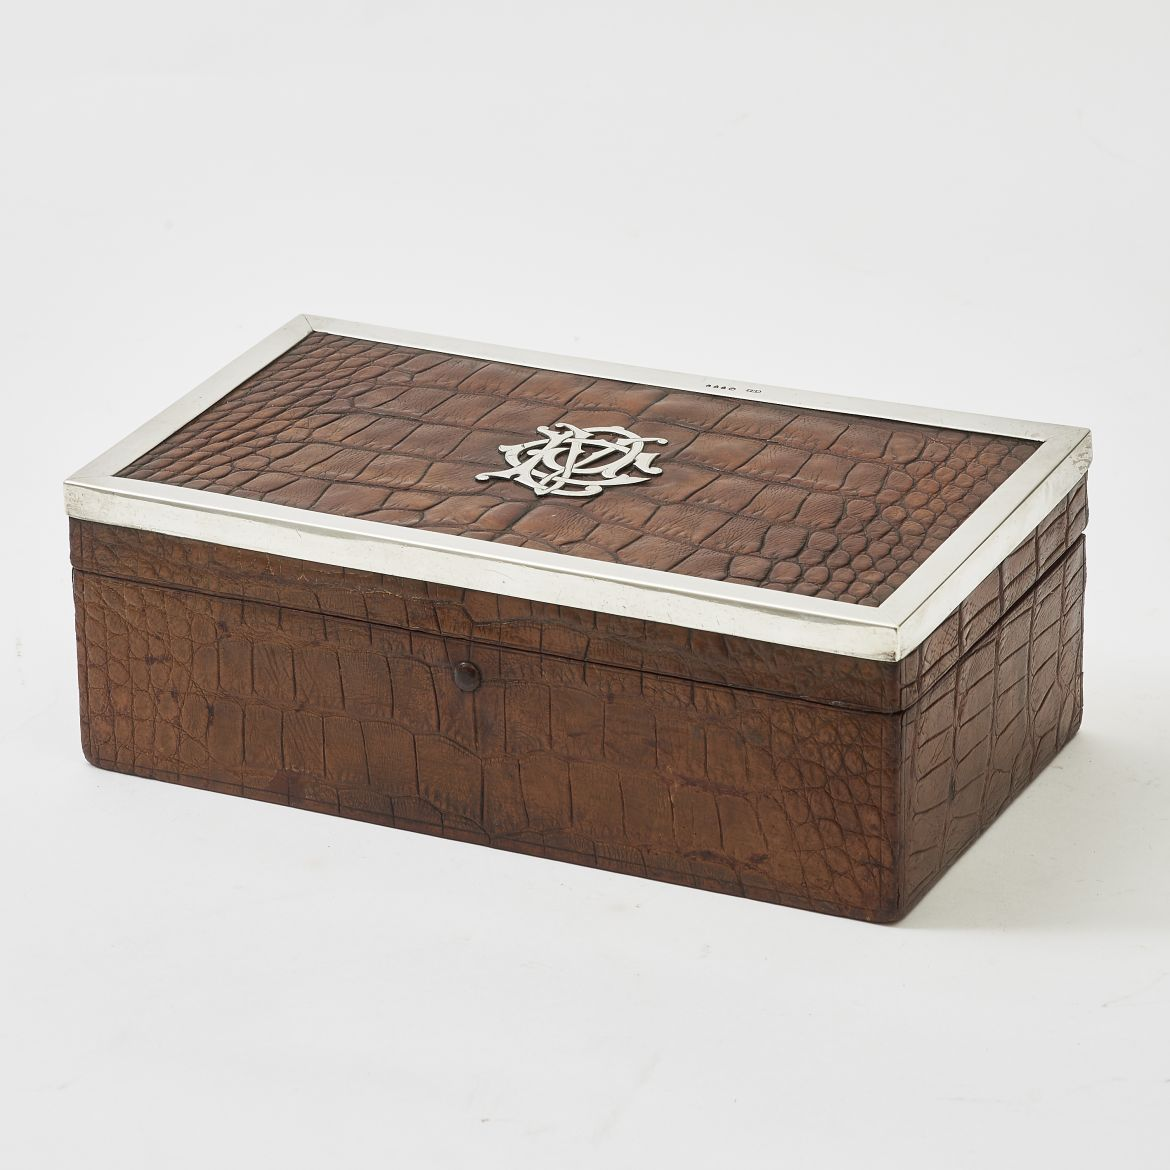 Initialled Crocodile Humidor